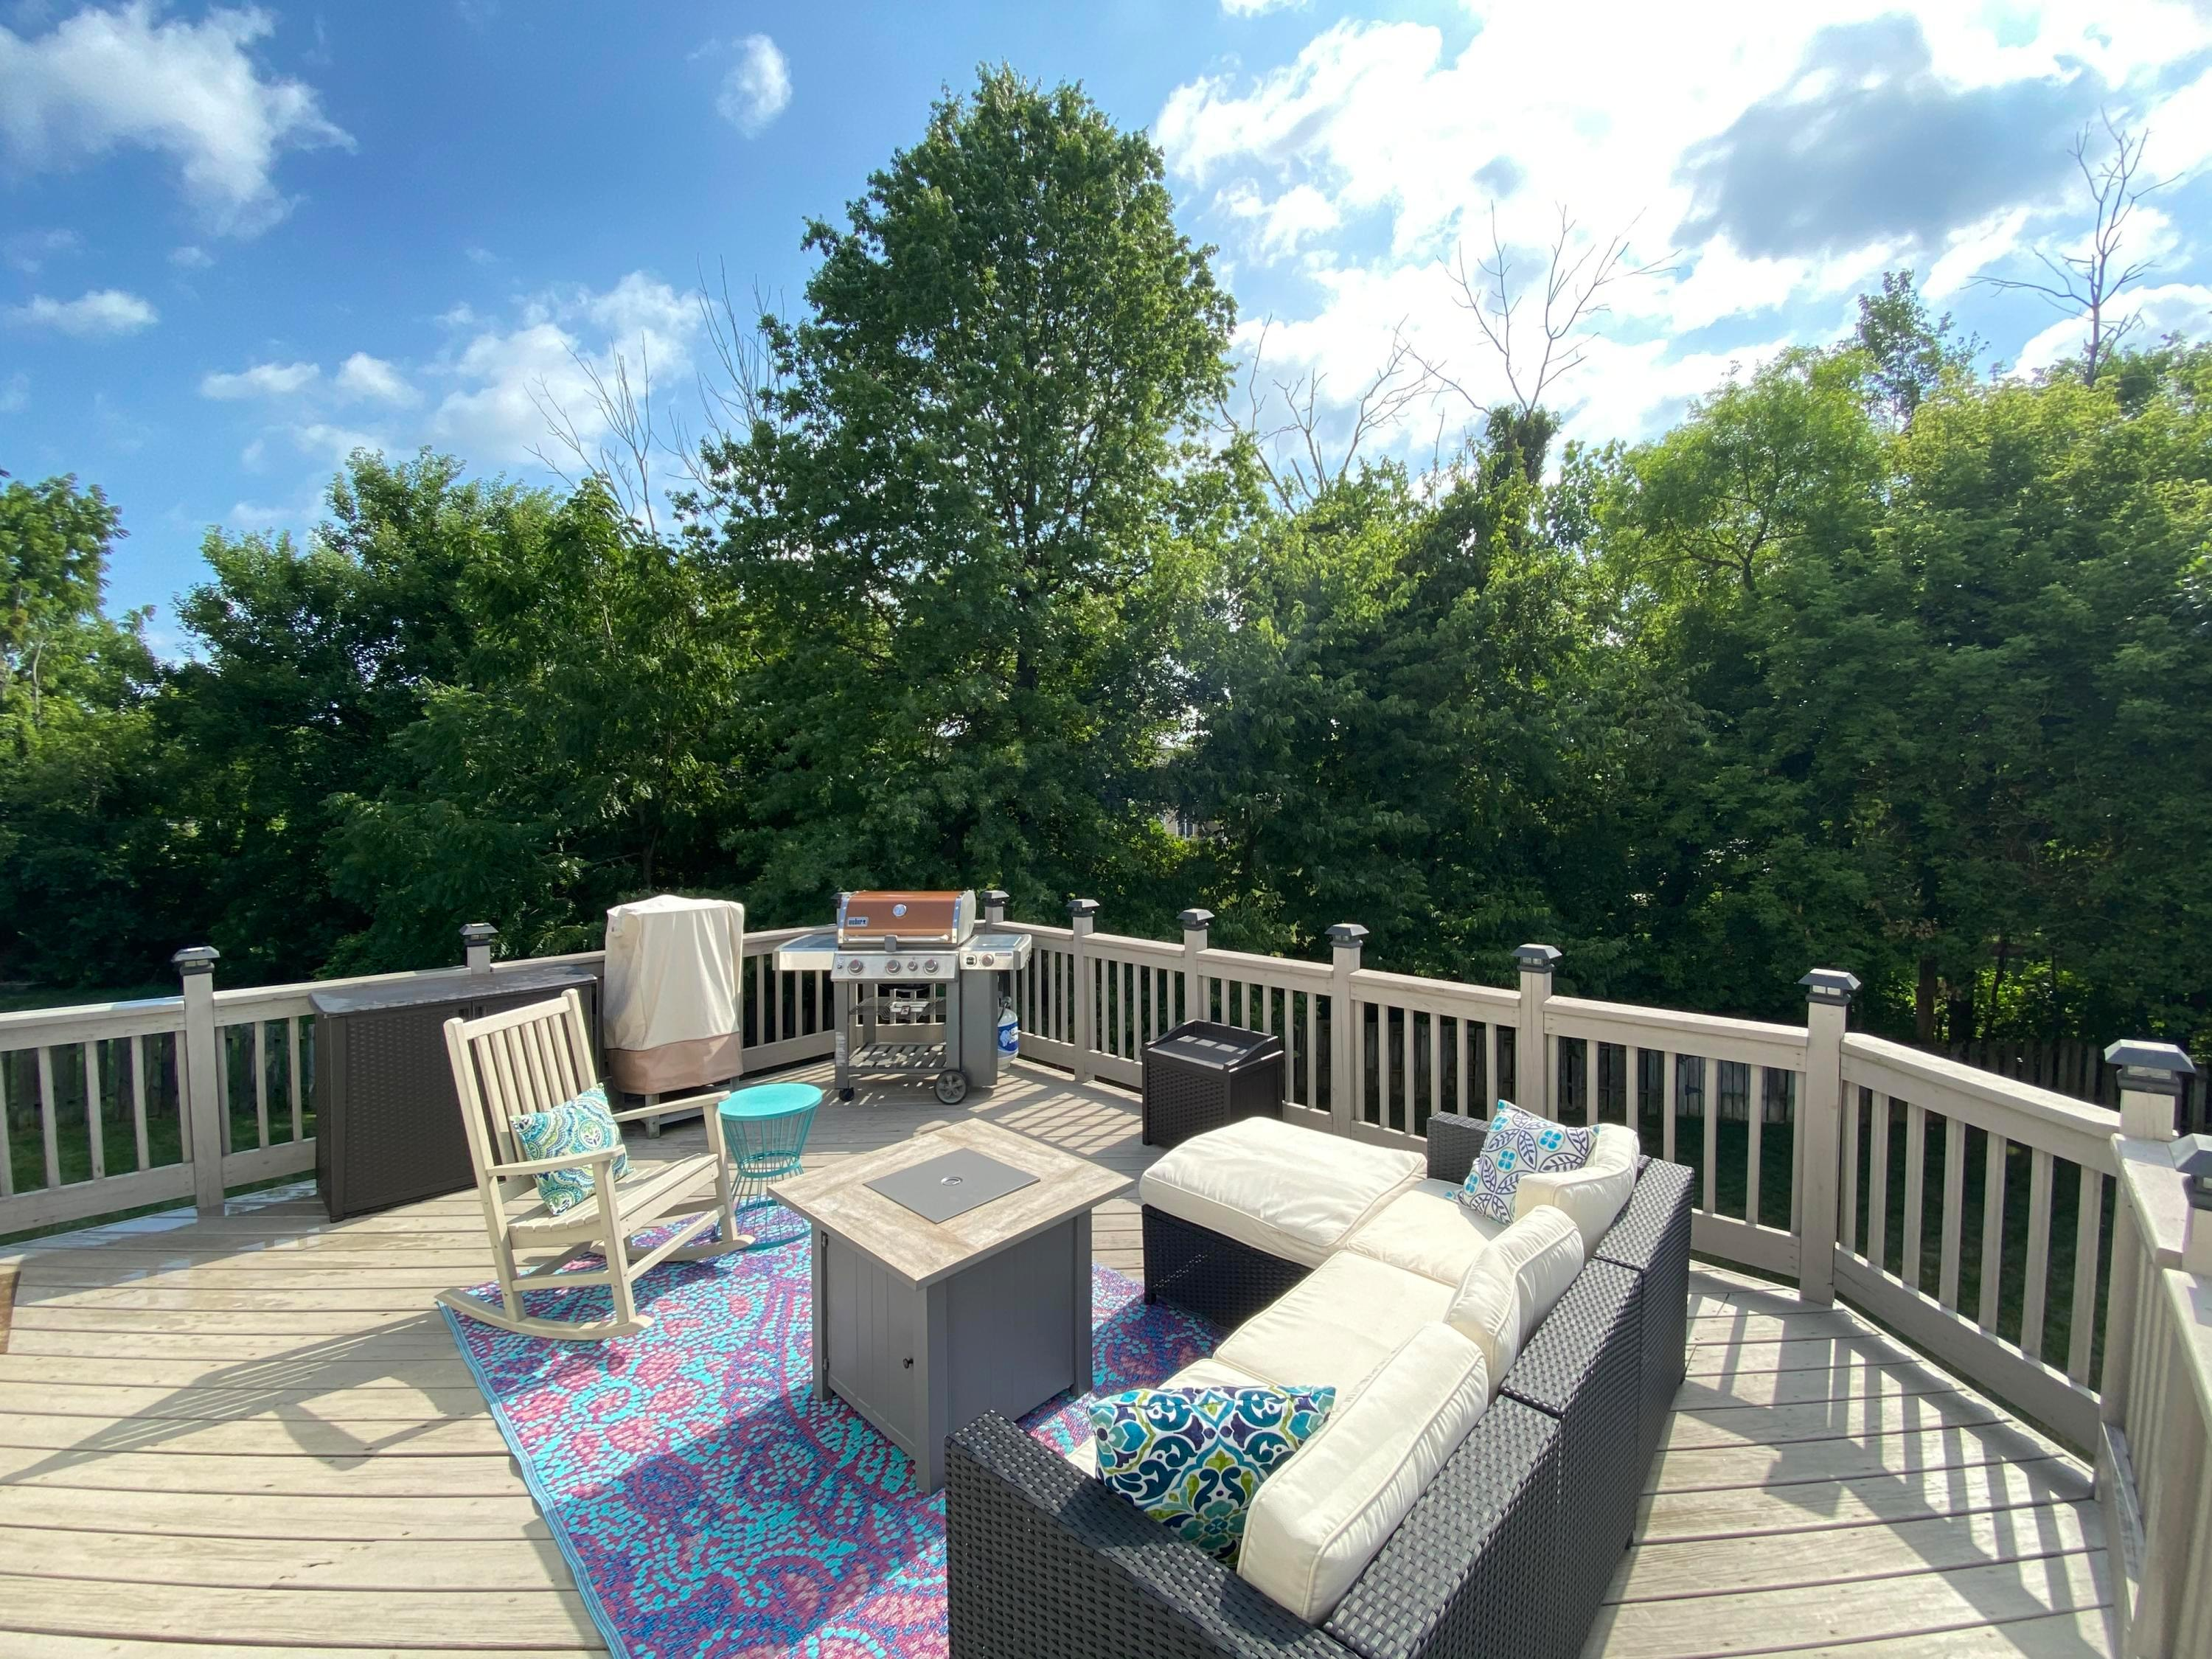 9230 Echo Hill Court, Columbus, Ohio 43240, 3 Bedrooms Bedrooms, ,3 BathroomsBathrooms,Residential,For Sale,Echo Hill,220025401